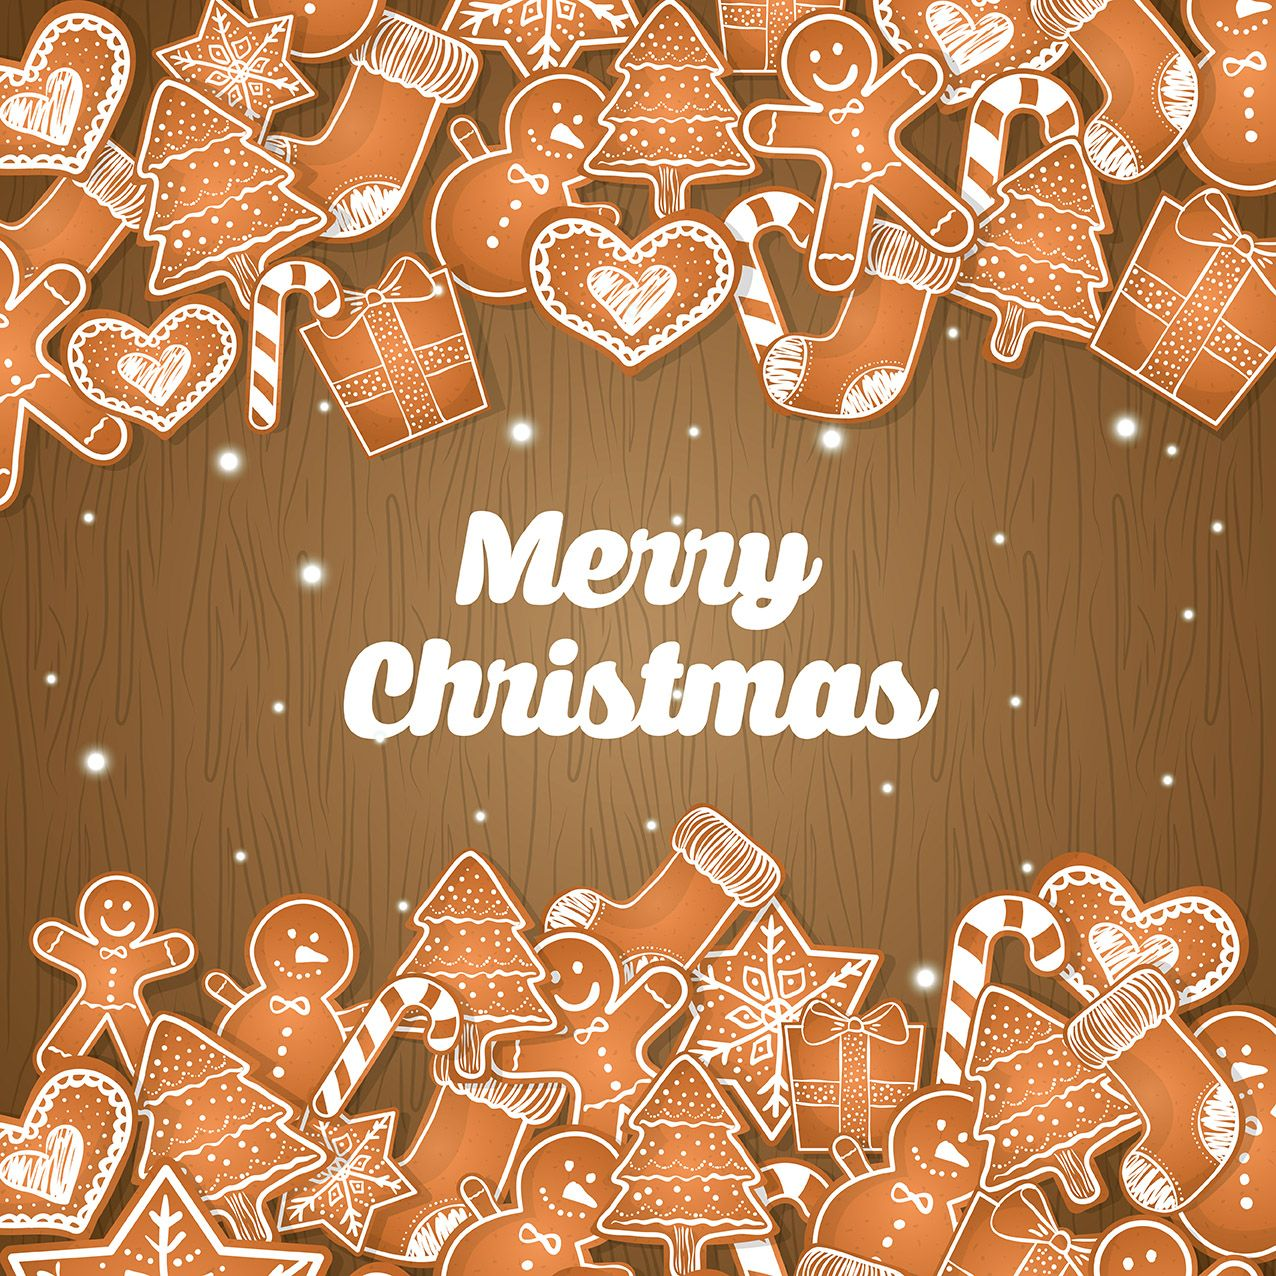 Marvelous Merry Christmas Images HD Romantic